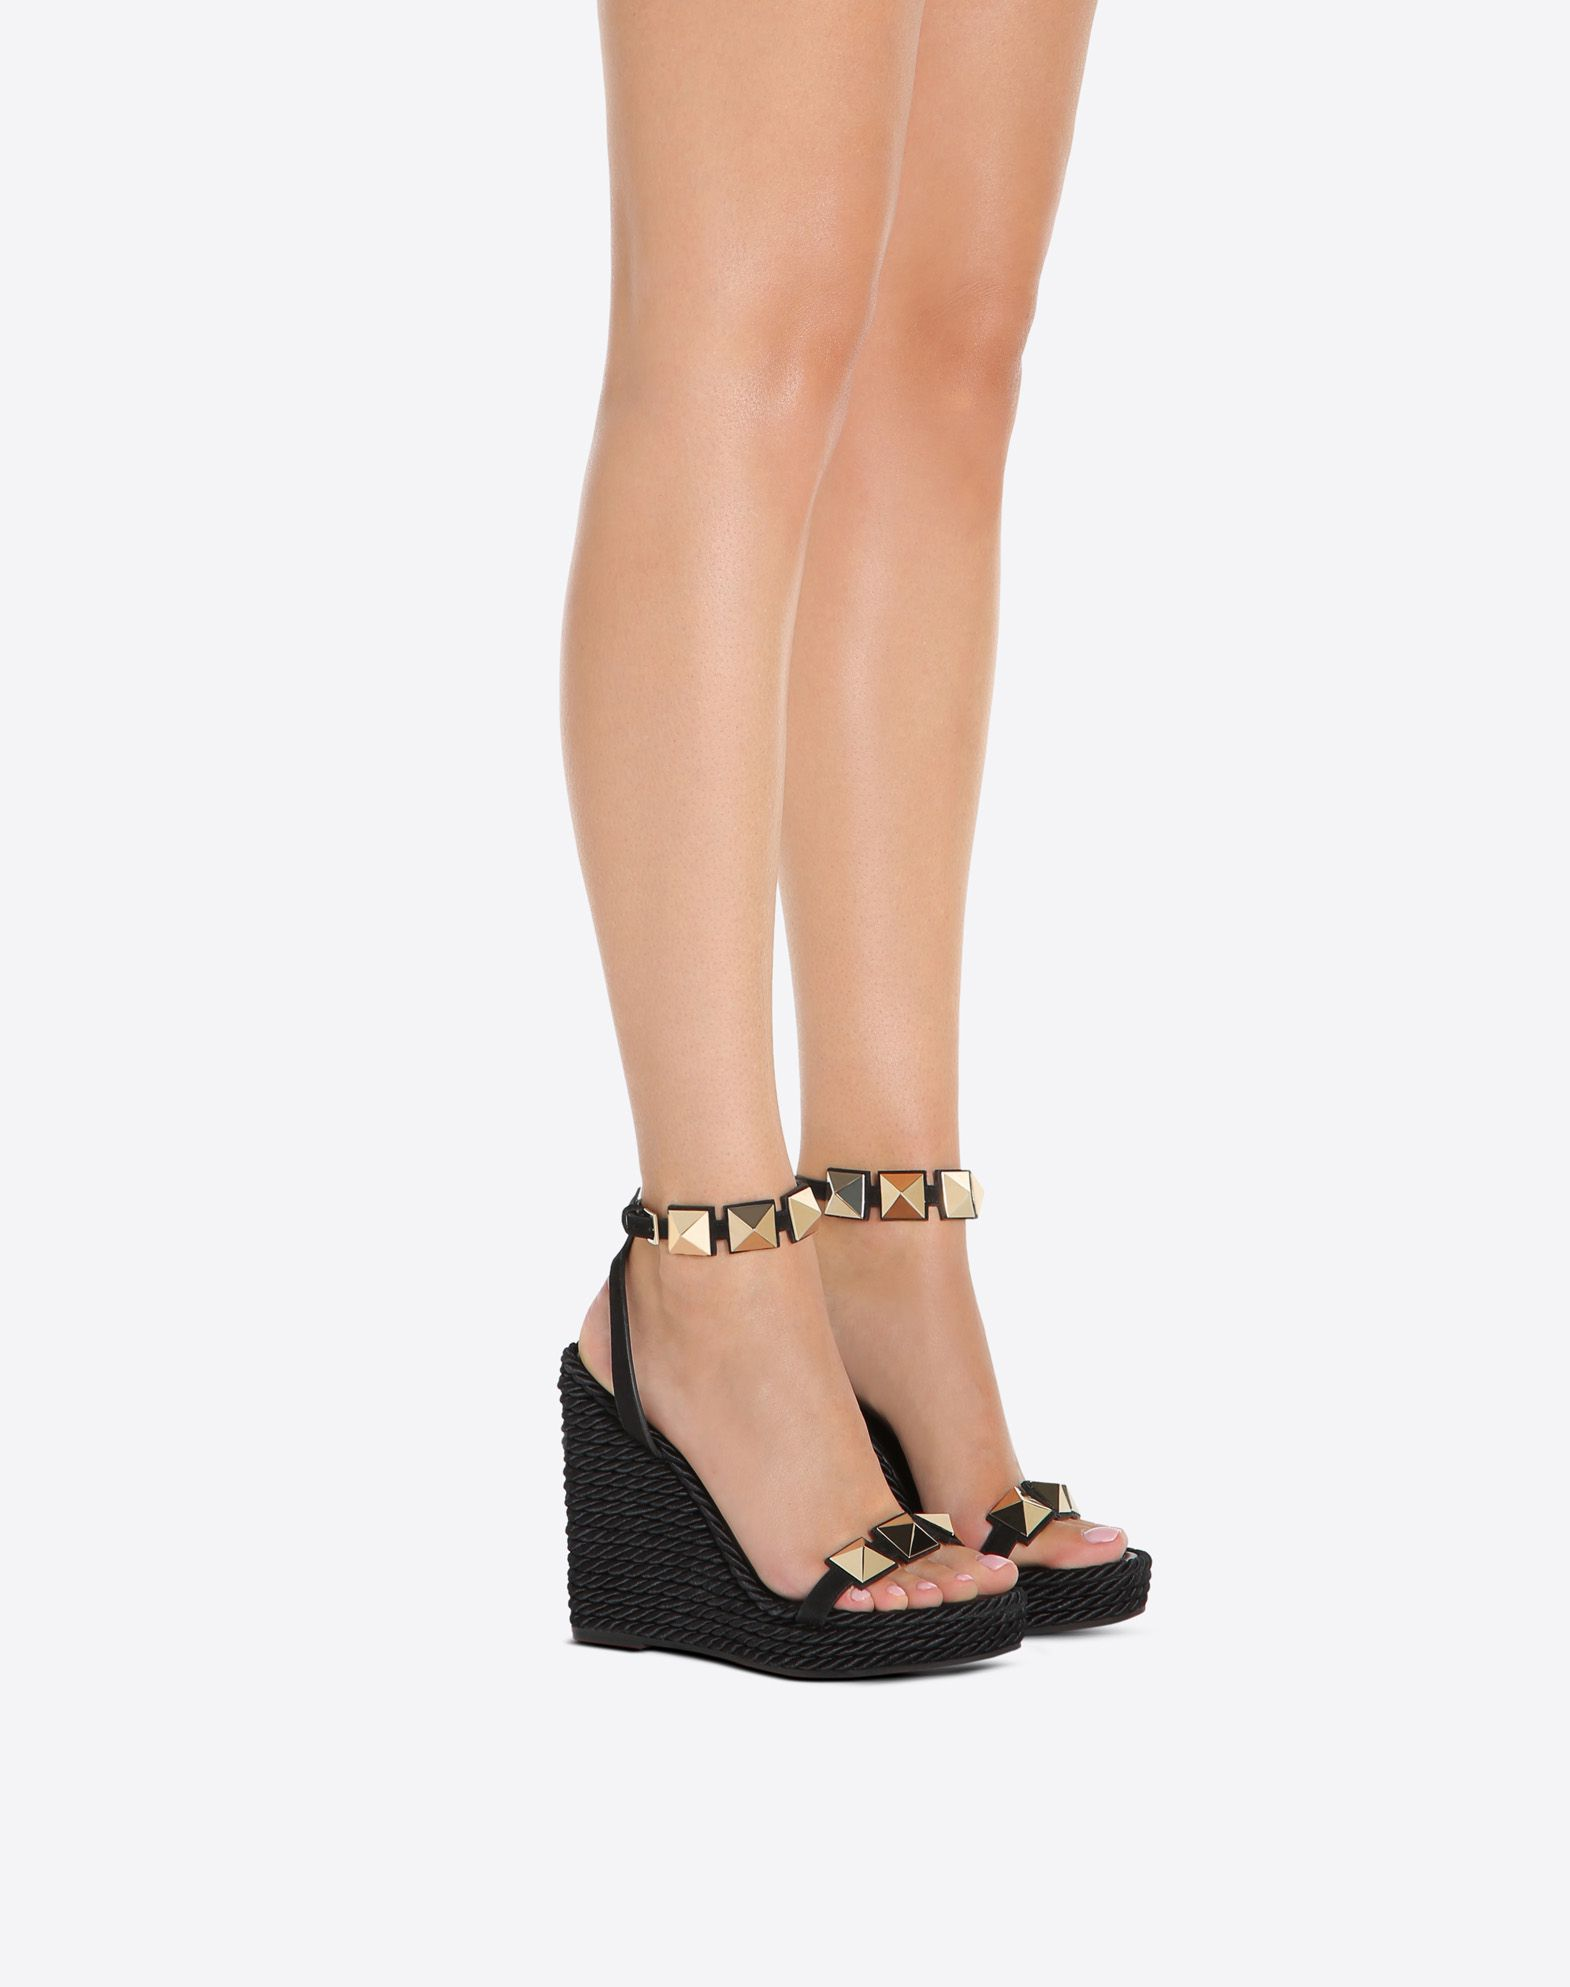 Valentino Ankle Strap Leather Wedges for nice sale online outlet sast cheap cost cheap explore amazing price for sale DLPXz0F82D